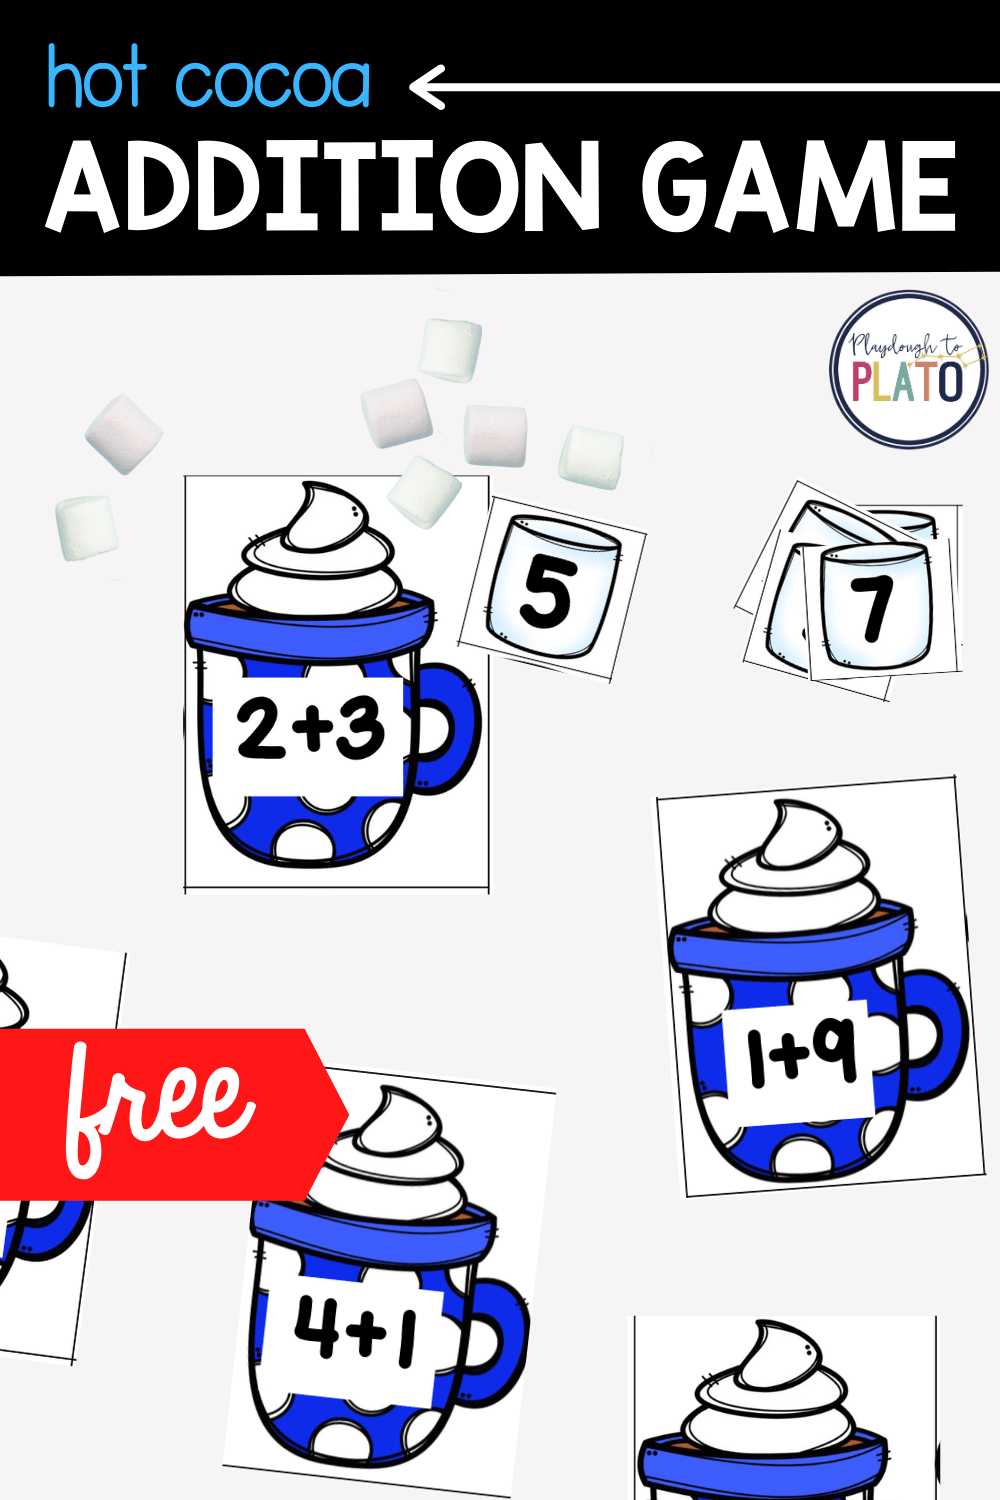 Hot Cocoa Addition Game